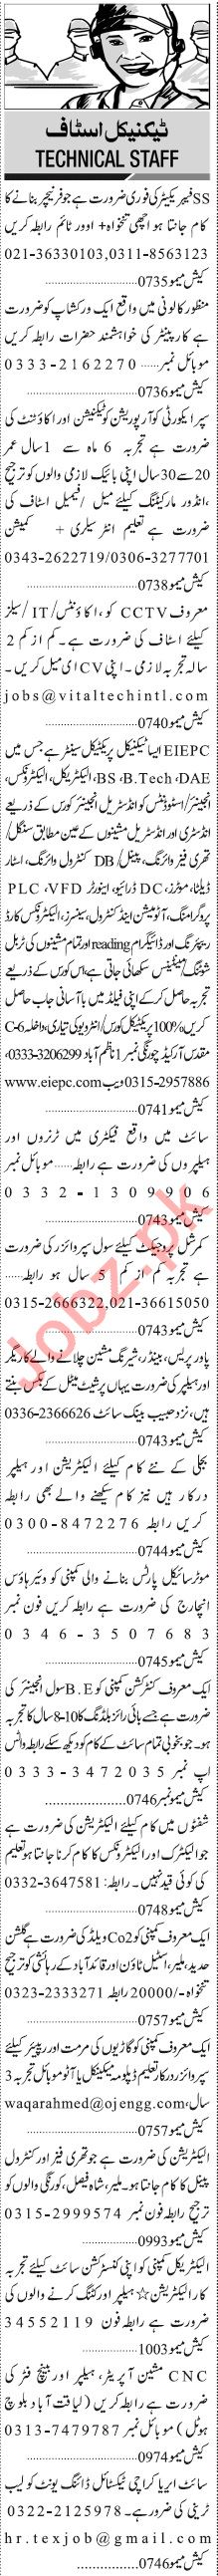 Jang Sunday Classified Ads 9th Dec 2019 for Technical Staff